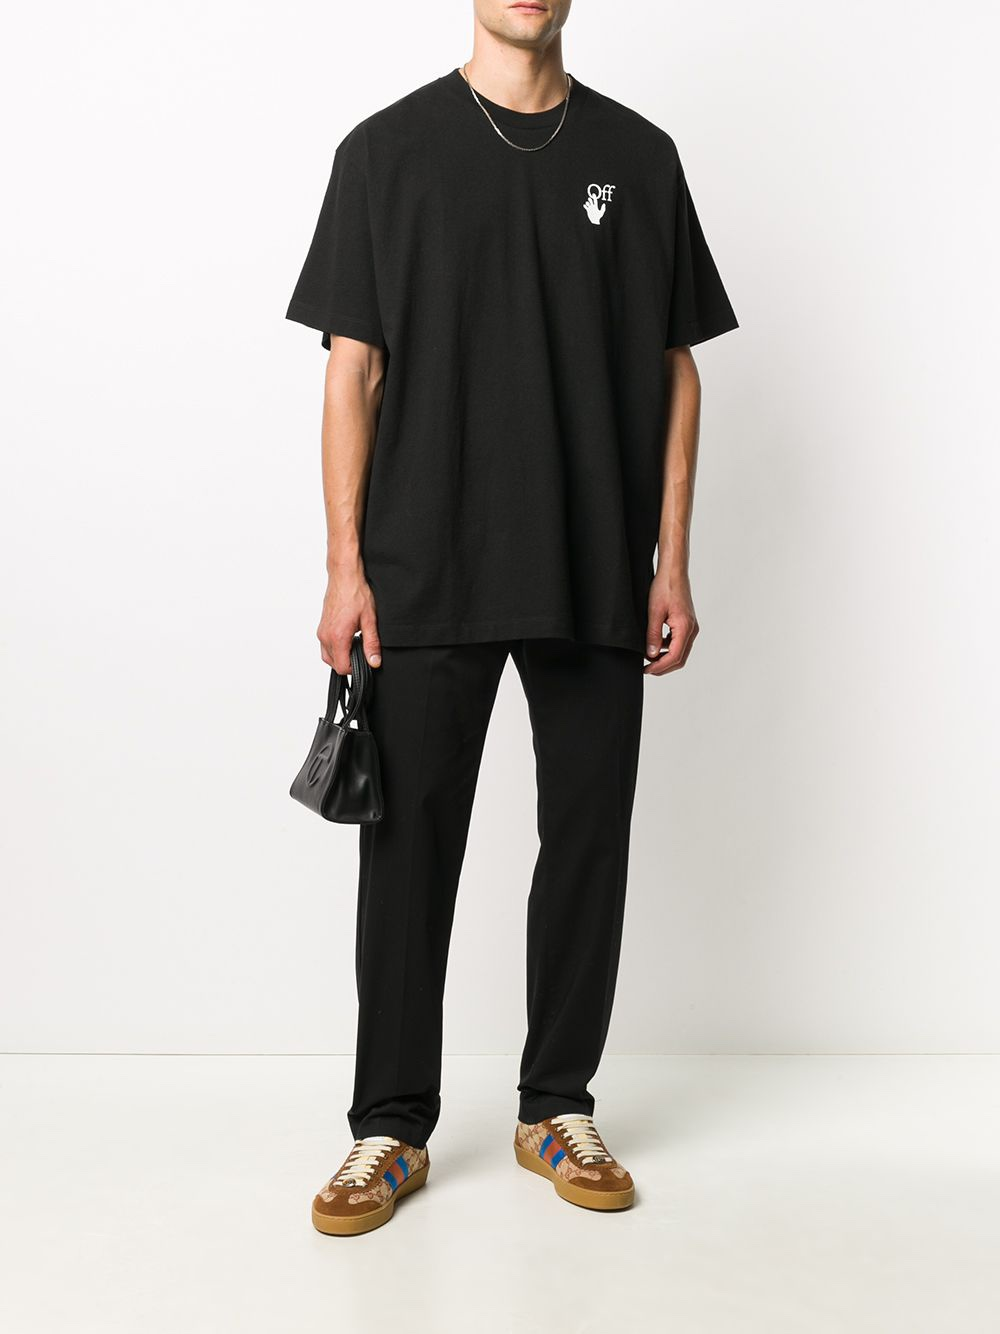 Off-White t-shirt oversize